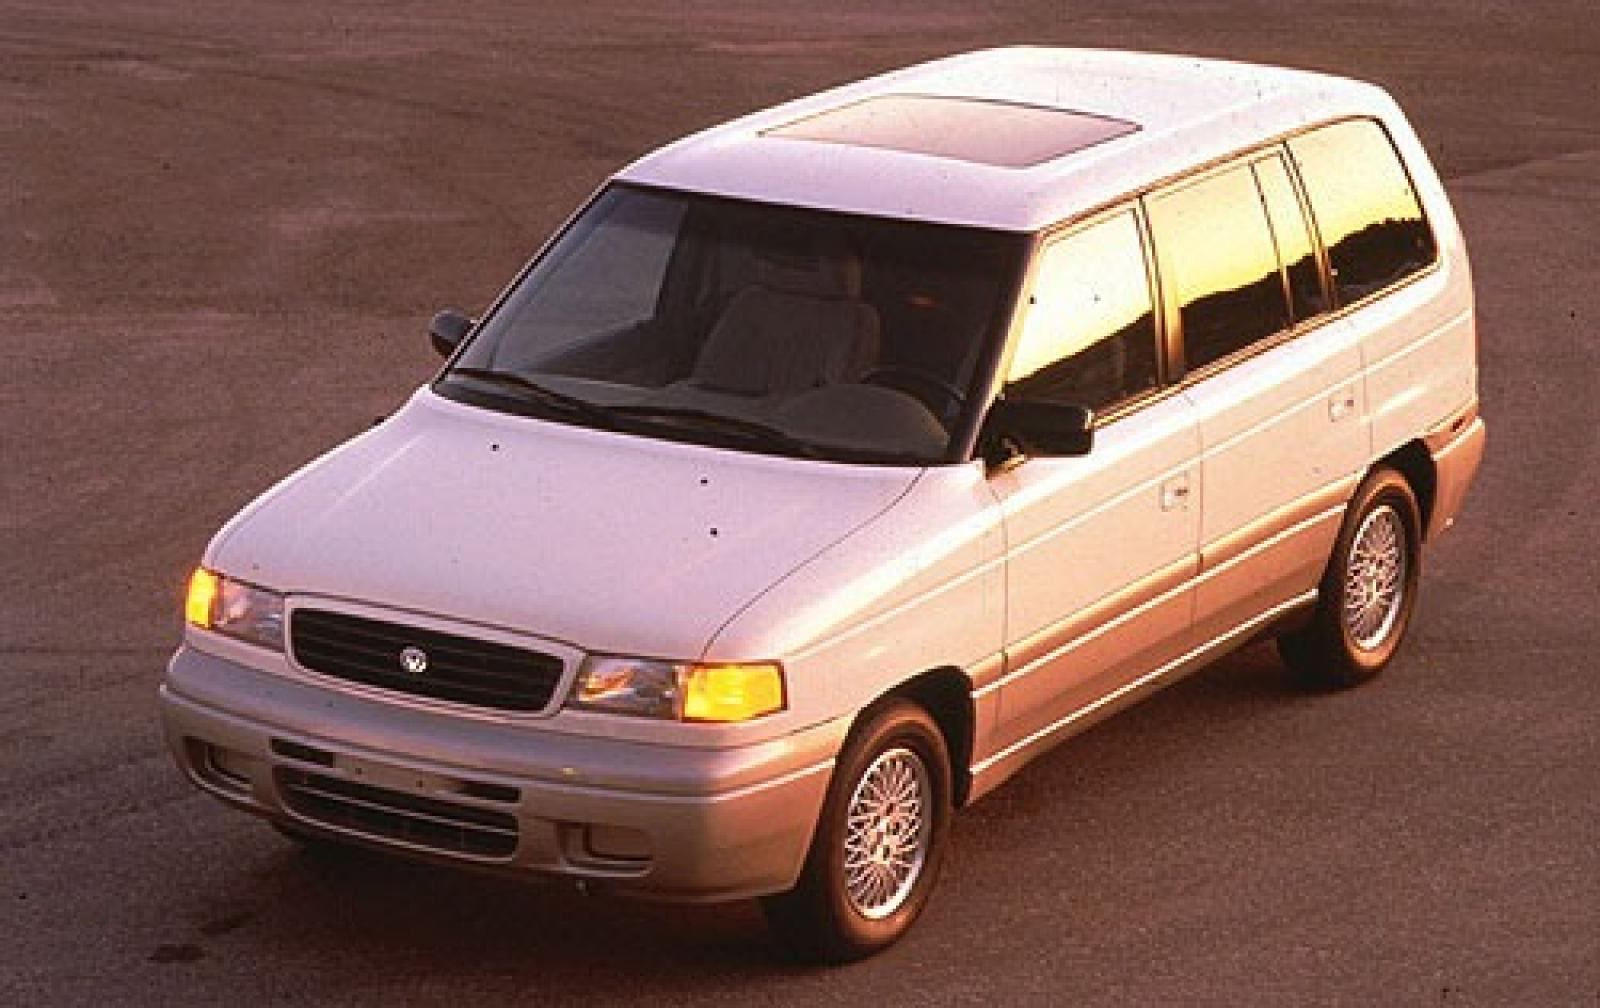 1997 mazda mpv information and photos zombiedrive. Black Bedroom Furniture Sets. Home Design Ideas